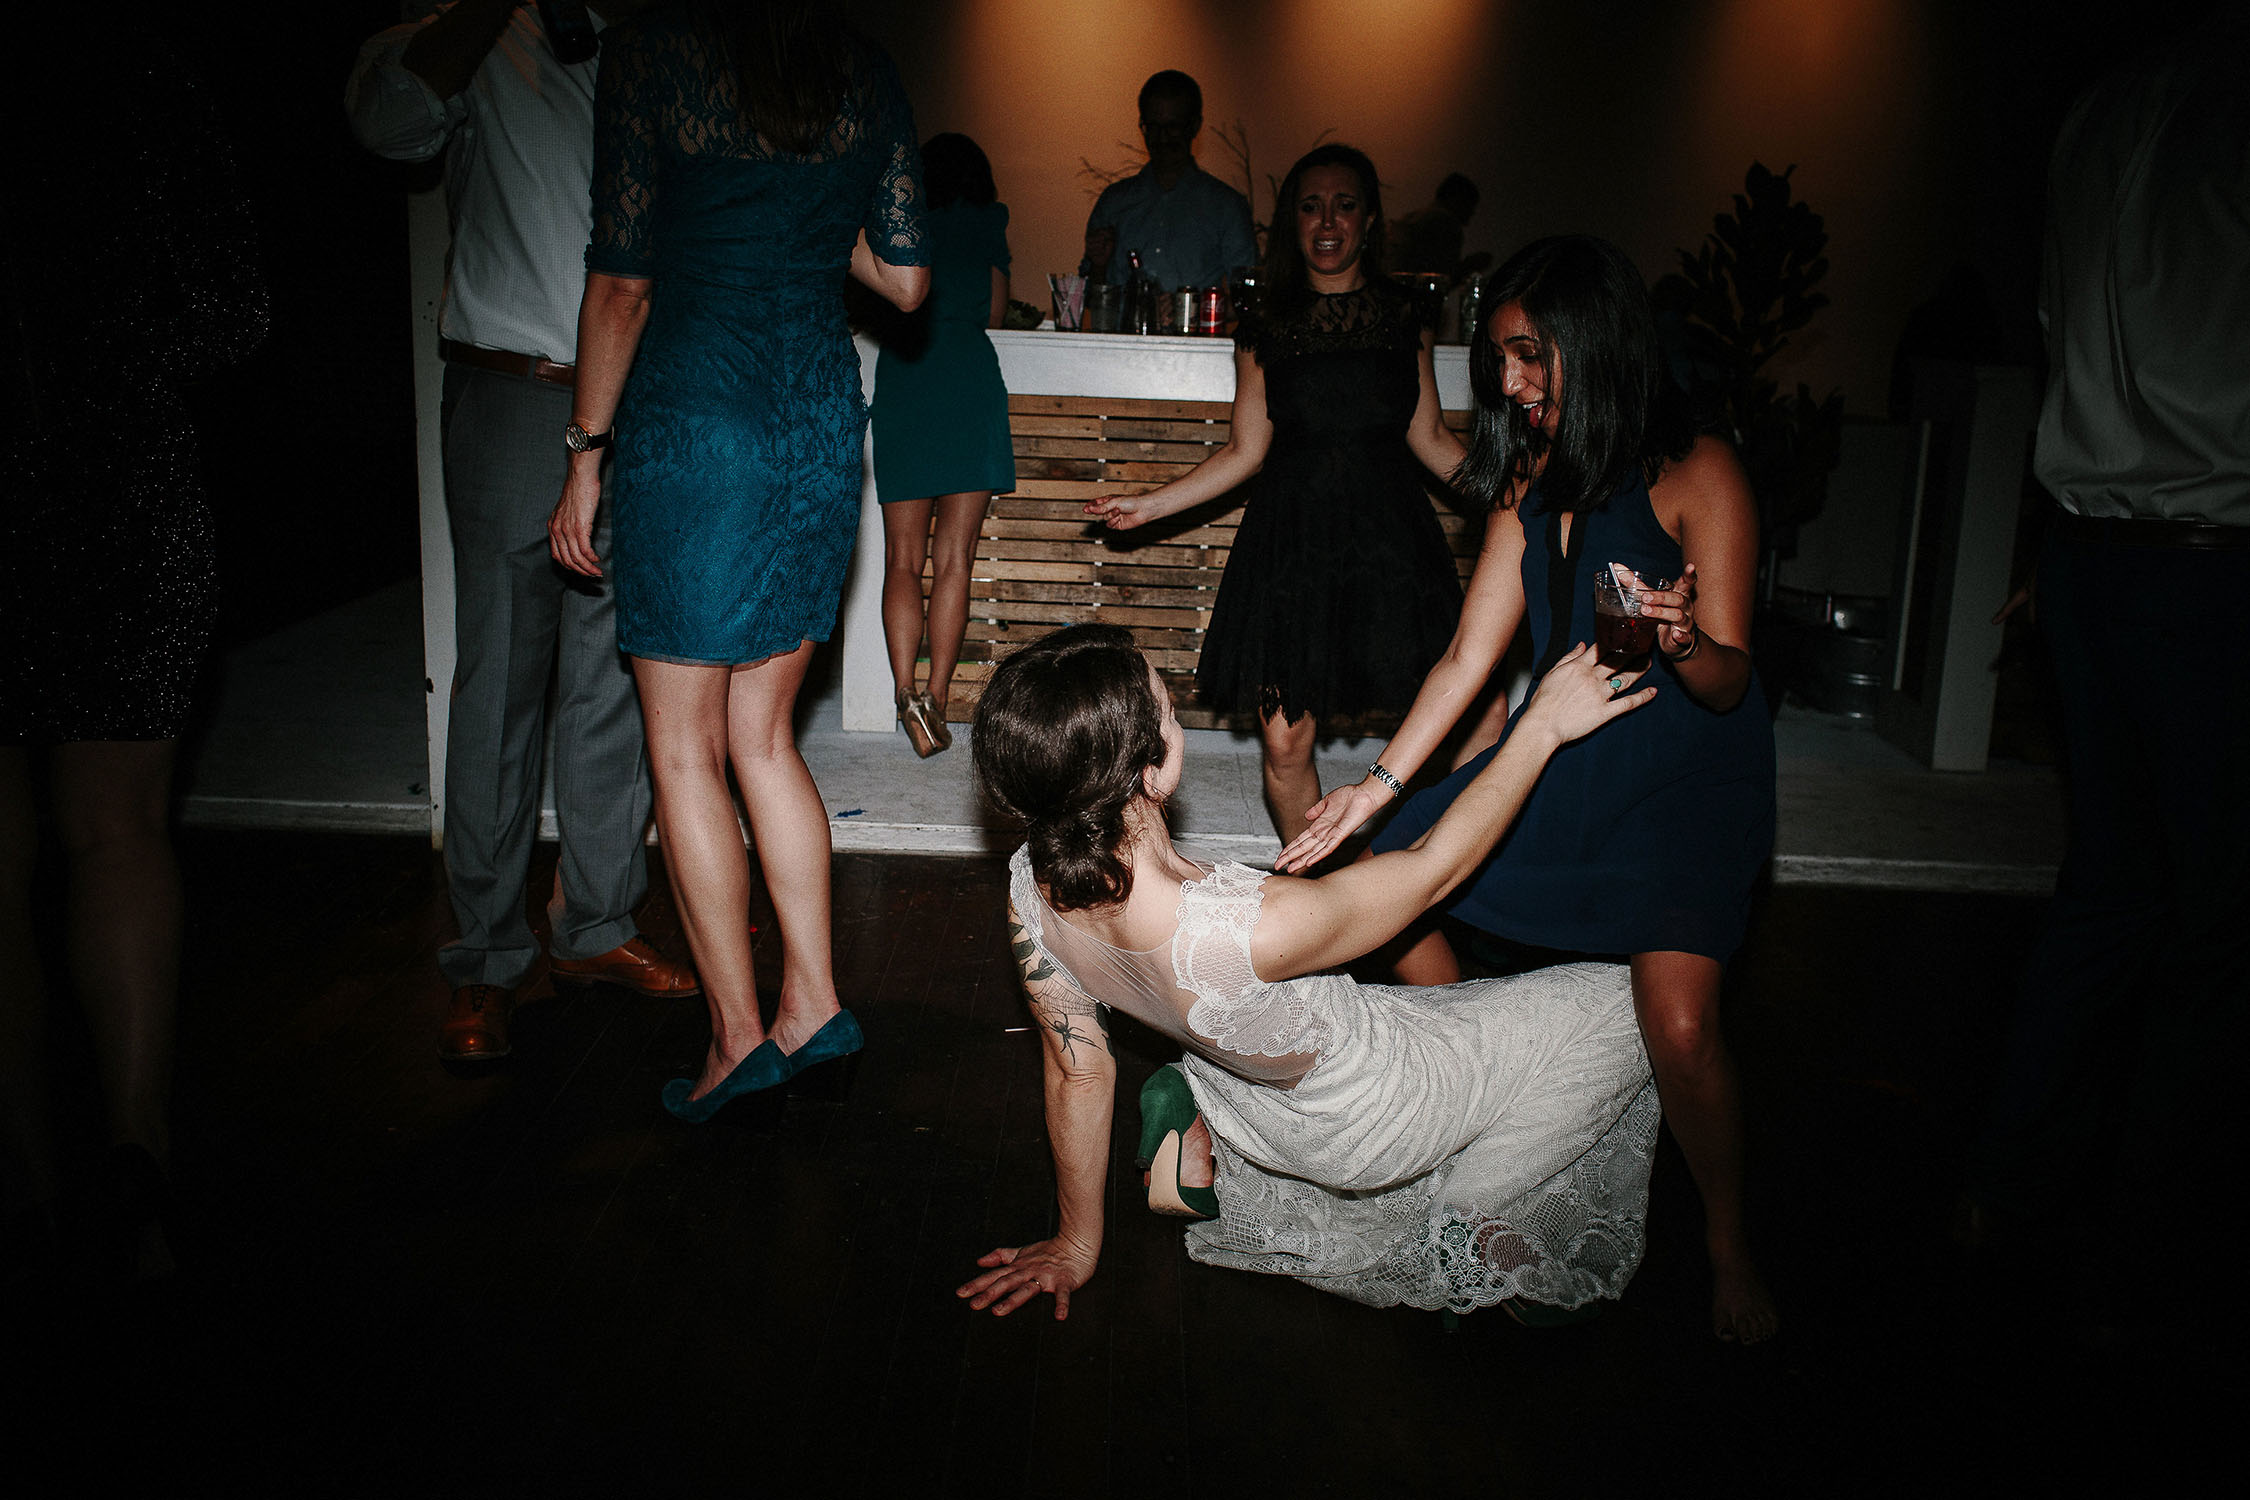 alternative-ambient-plus-studio-wedding (17 of 20).jpg